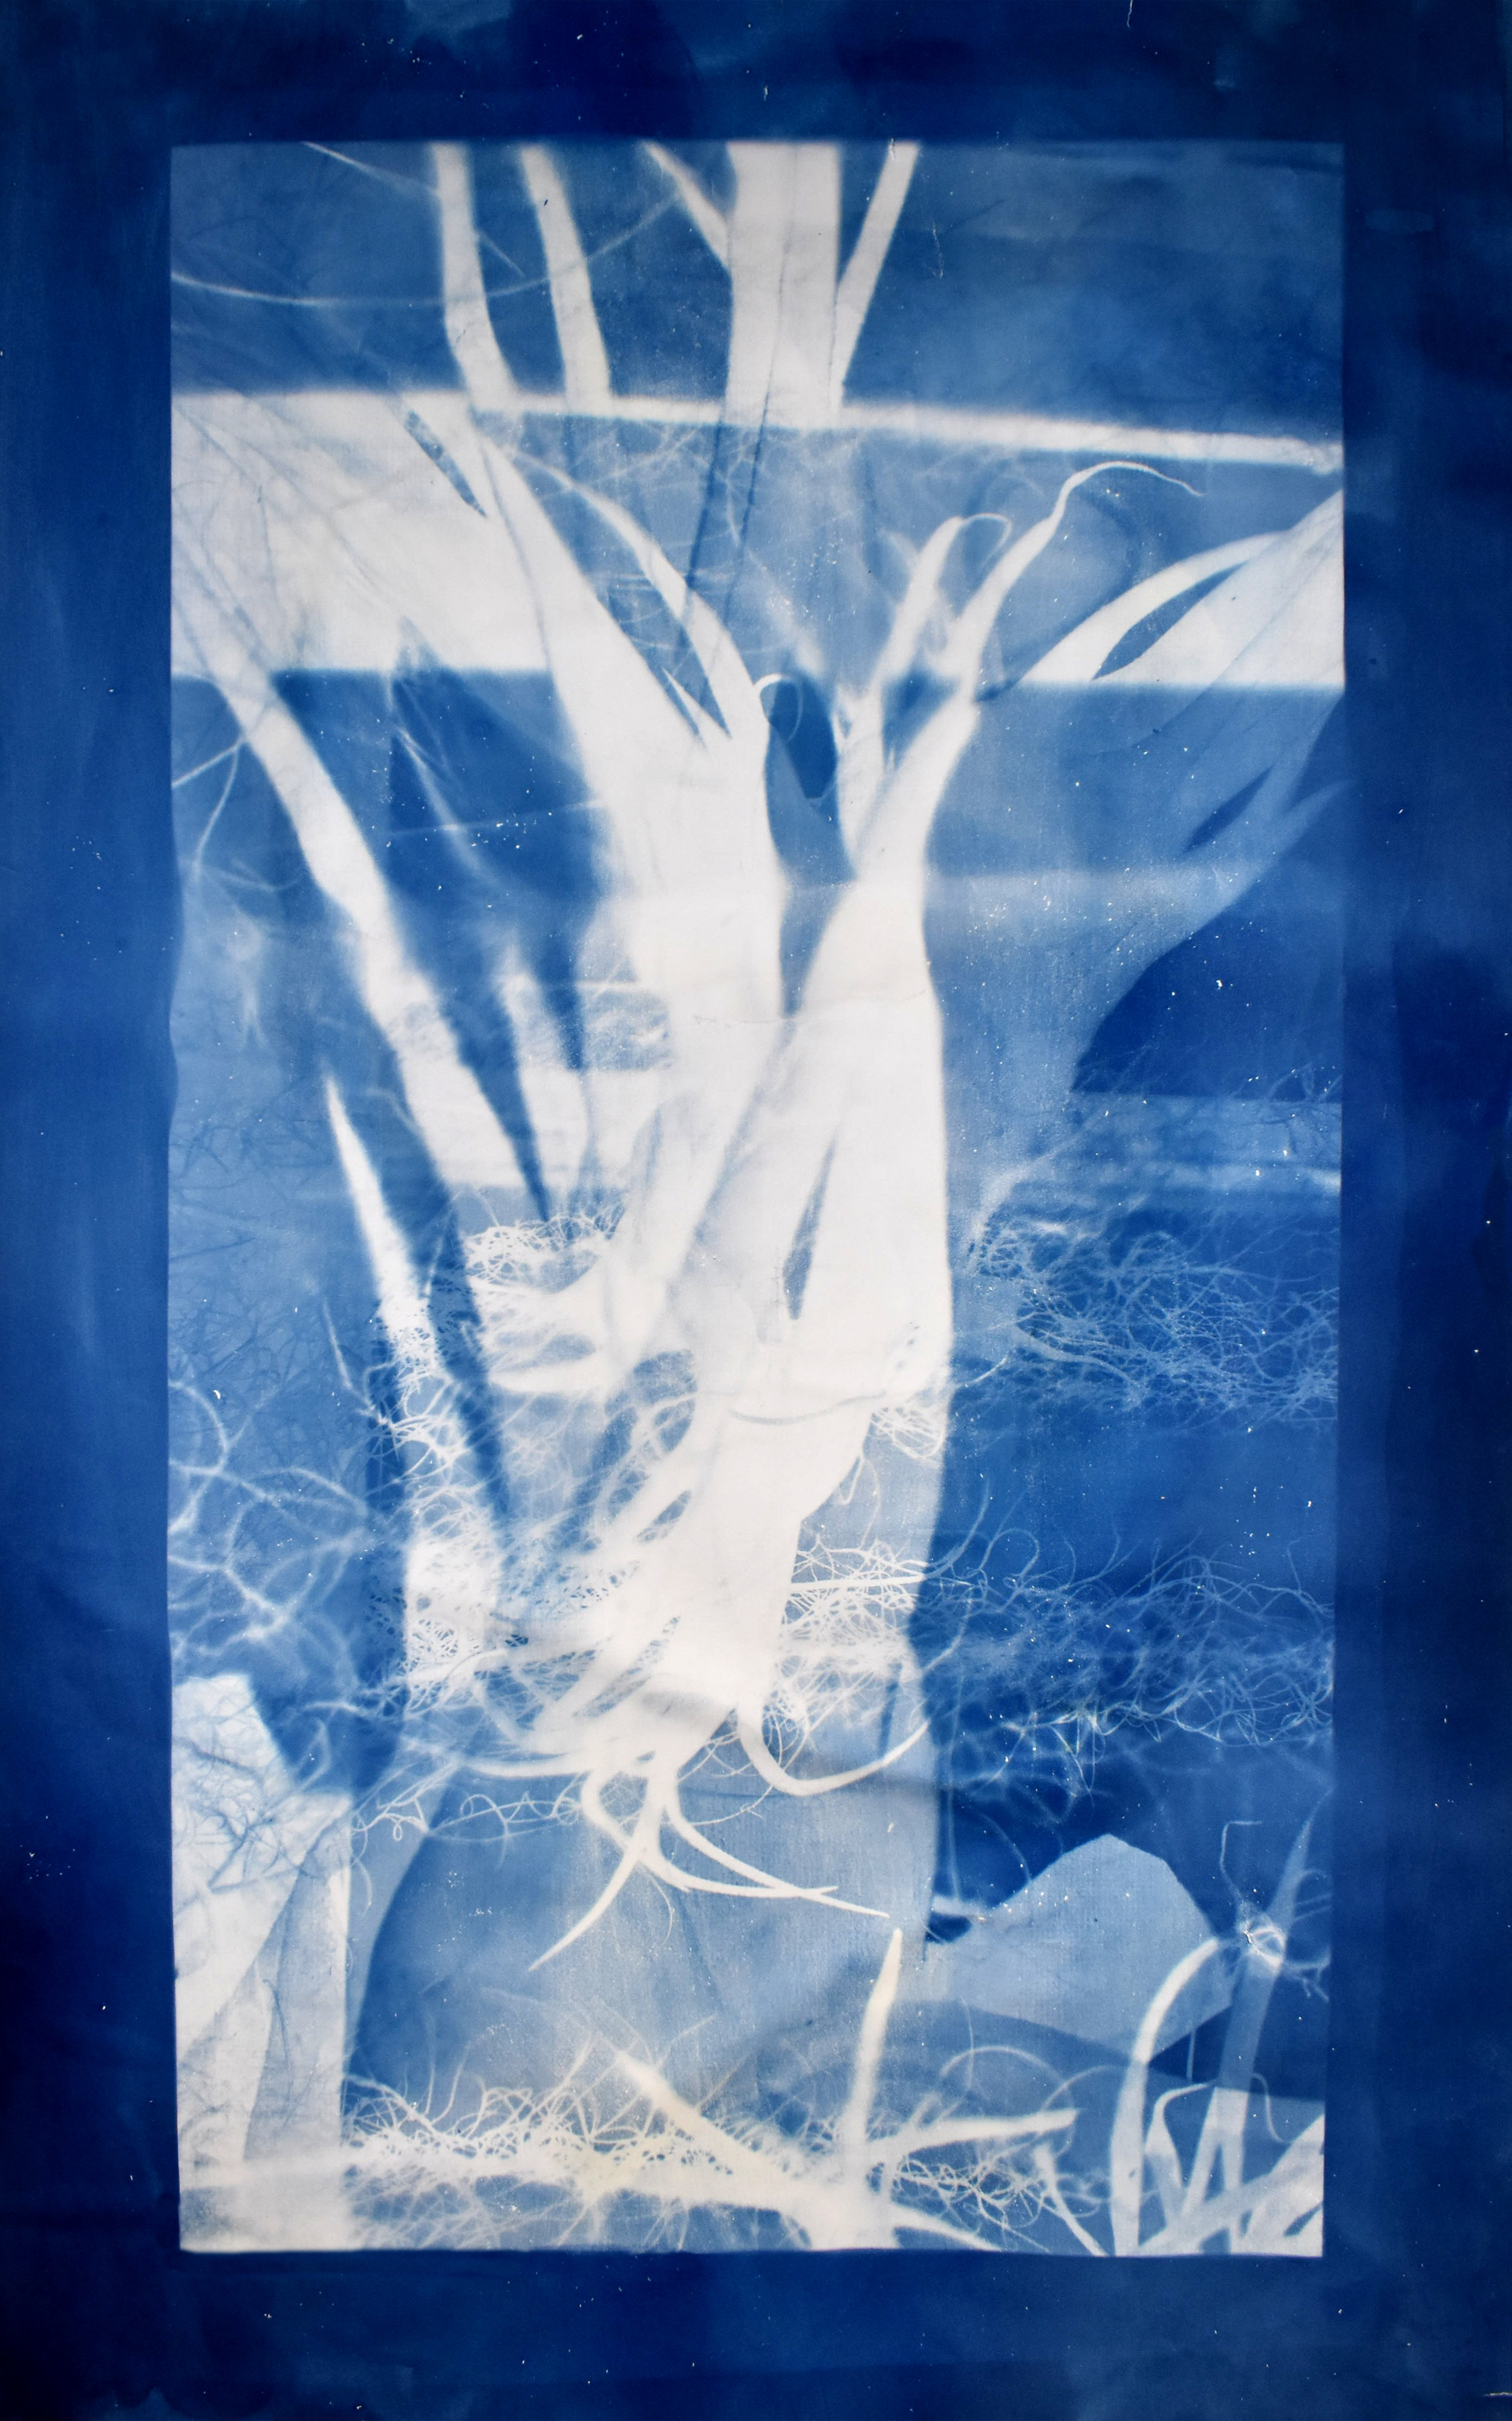 Interlaced (cyan) No. 2,  2019, series of 3 cyanotypes. Based on a superposition of macroscopic photographs taken of orchids, greenhouses of Versailles-Chèvreloup, France. 70cm x 150cm each.